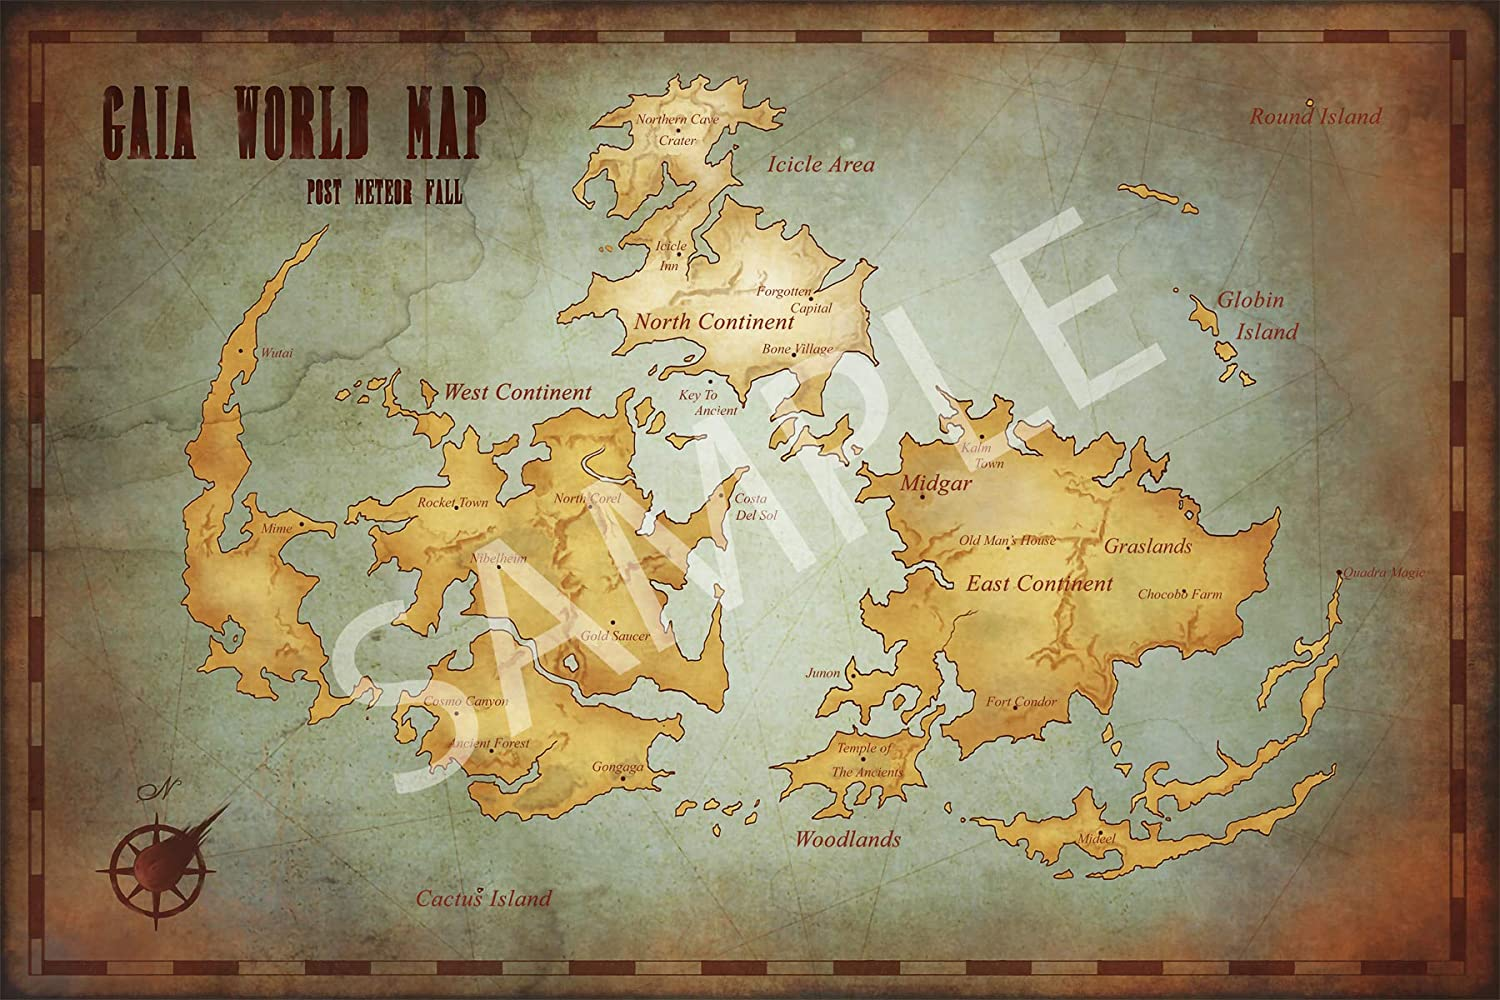 Best Print Store - Final Fantasy 7 Gaia World Map Poster (16x24 inches)